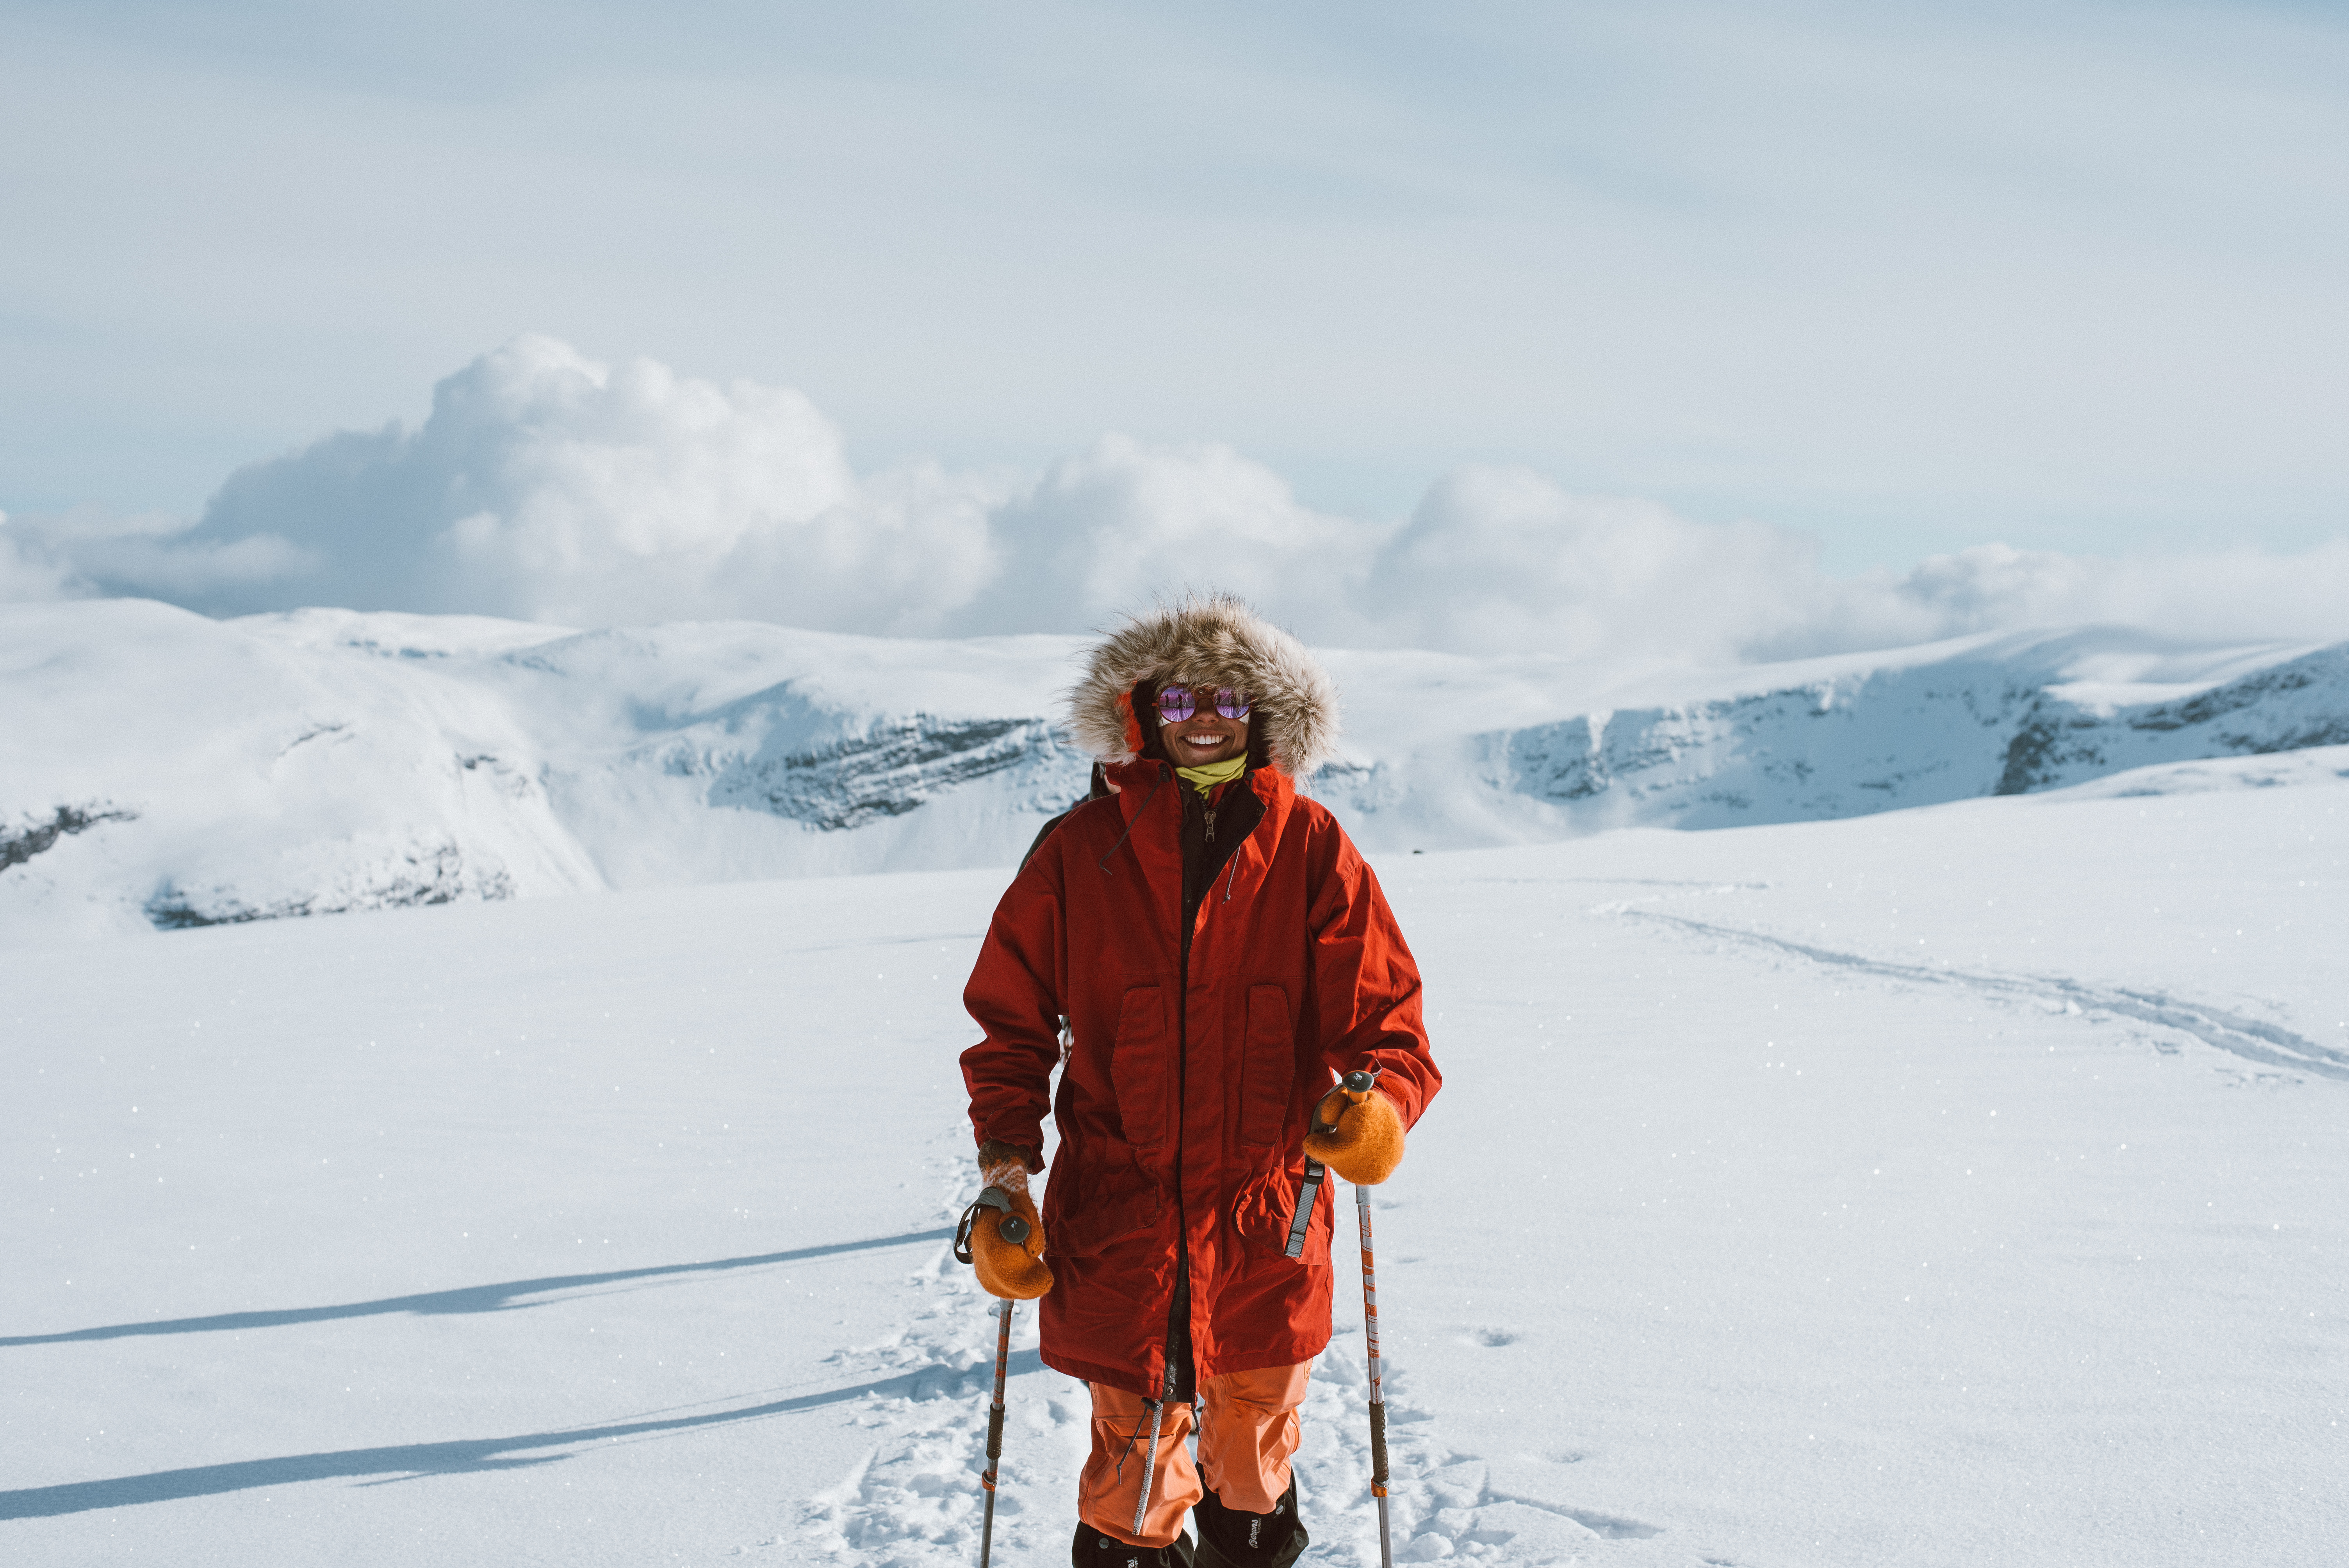 person in a red hooded coat in a snowy scene smiling with walking poles